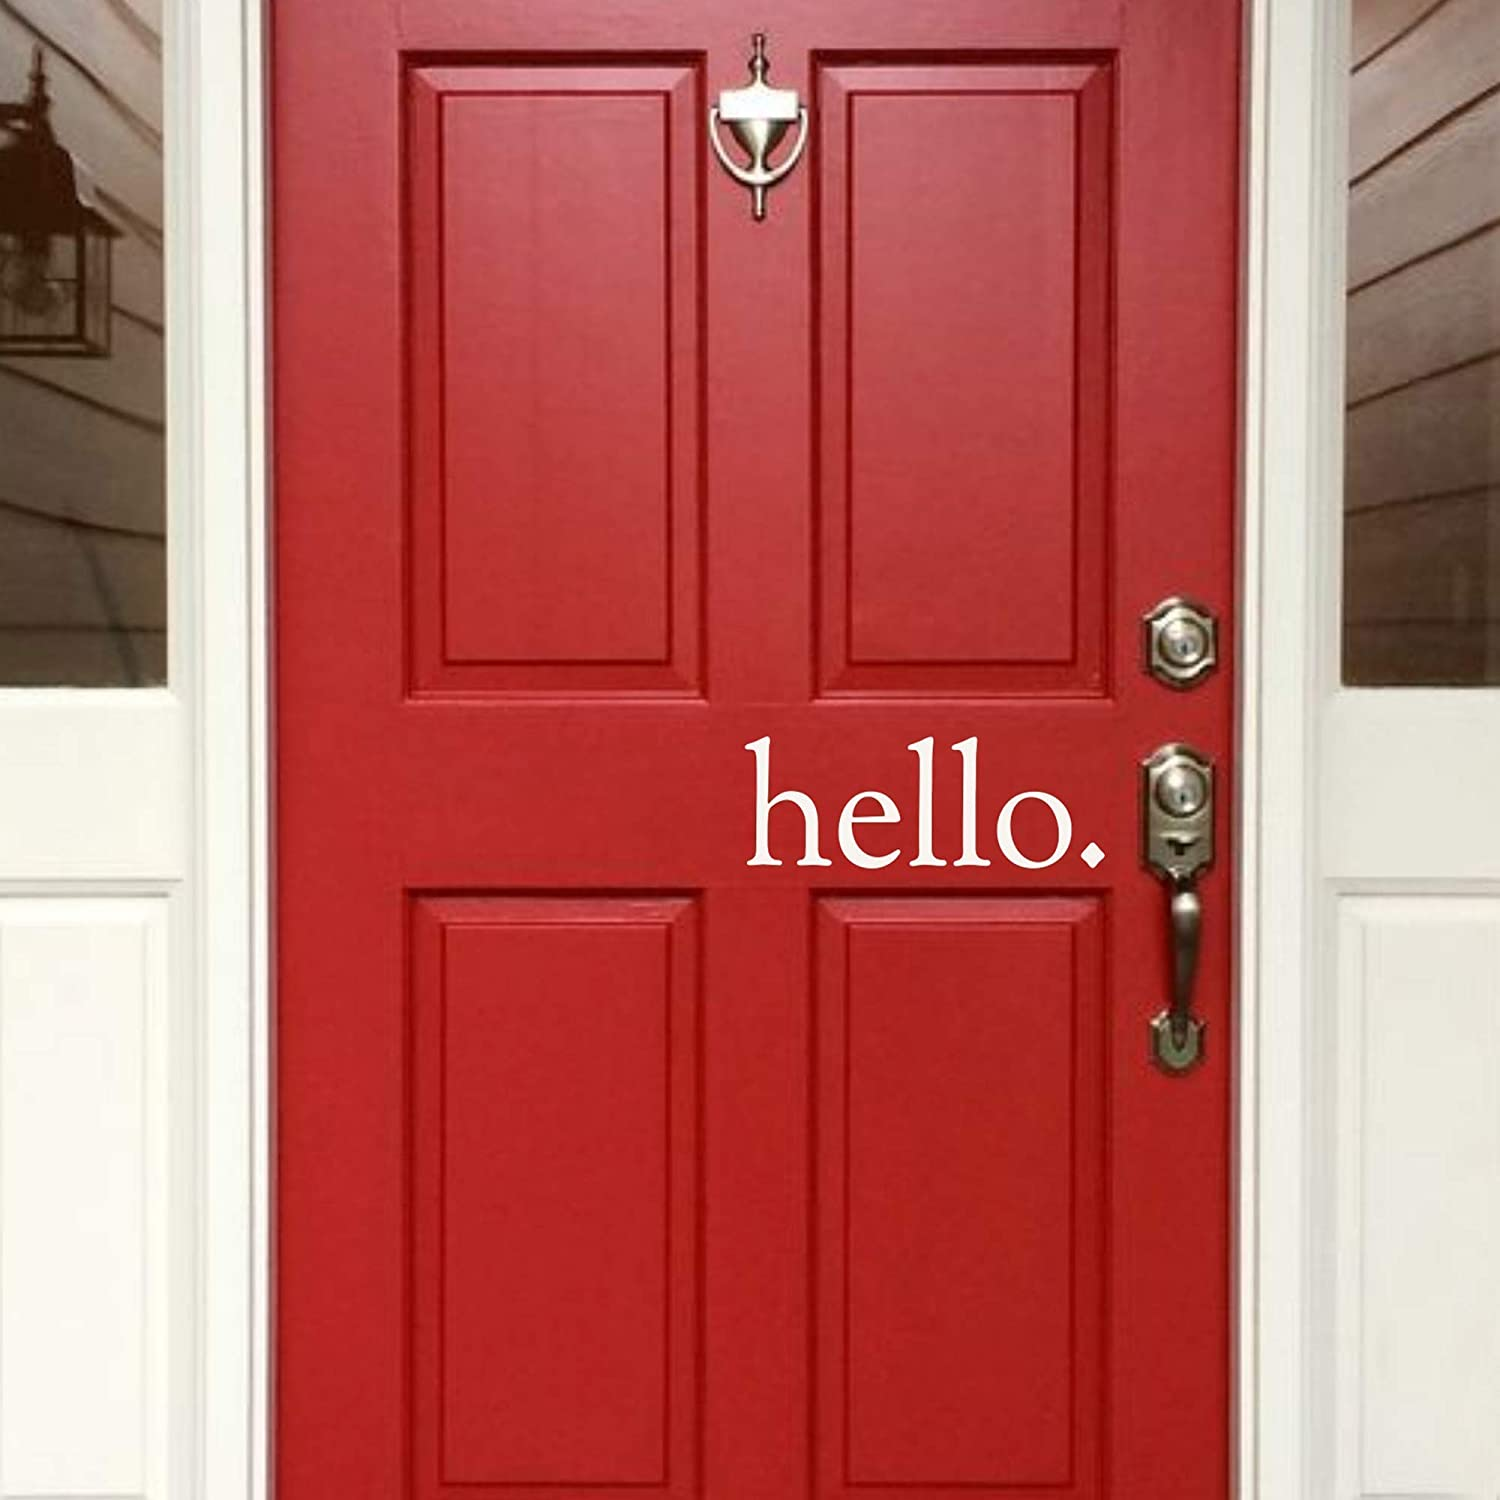 Back40Life - Hello Front Decal E-005a Vinyl Special High quality price for a limited time Door